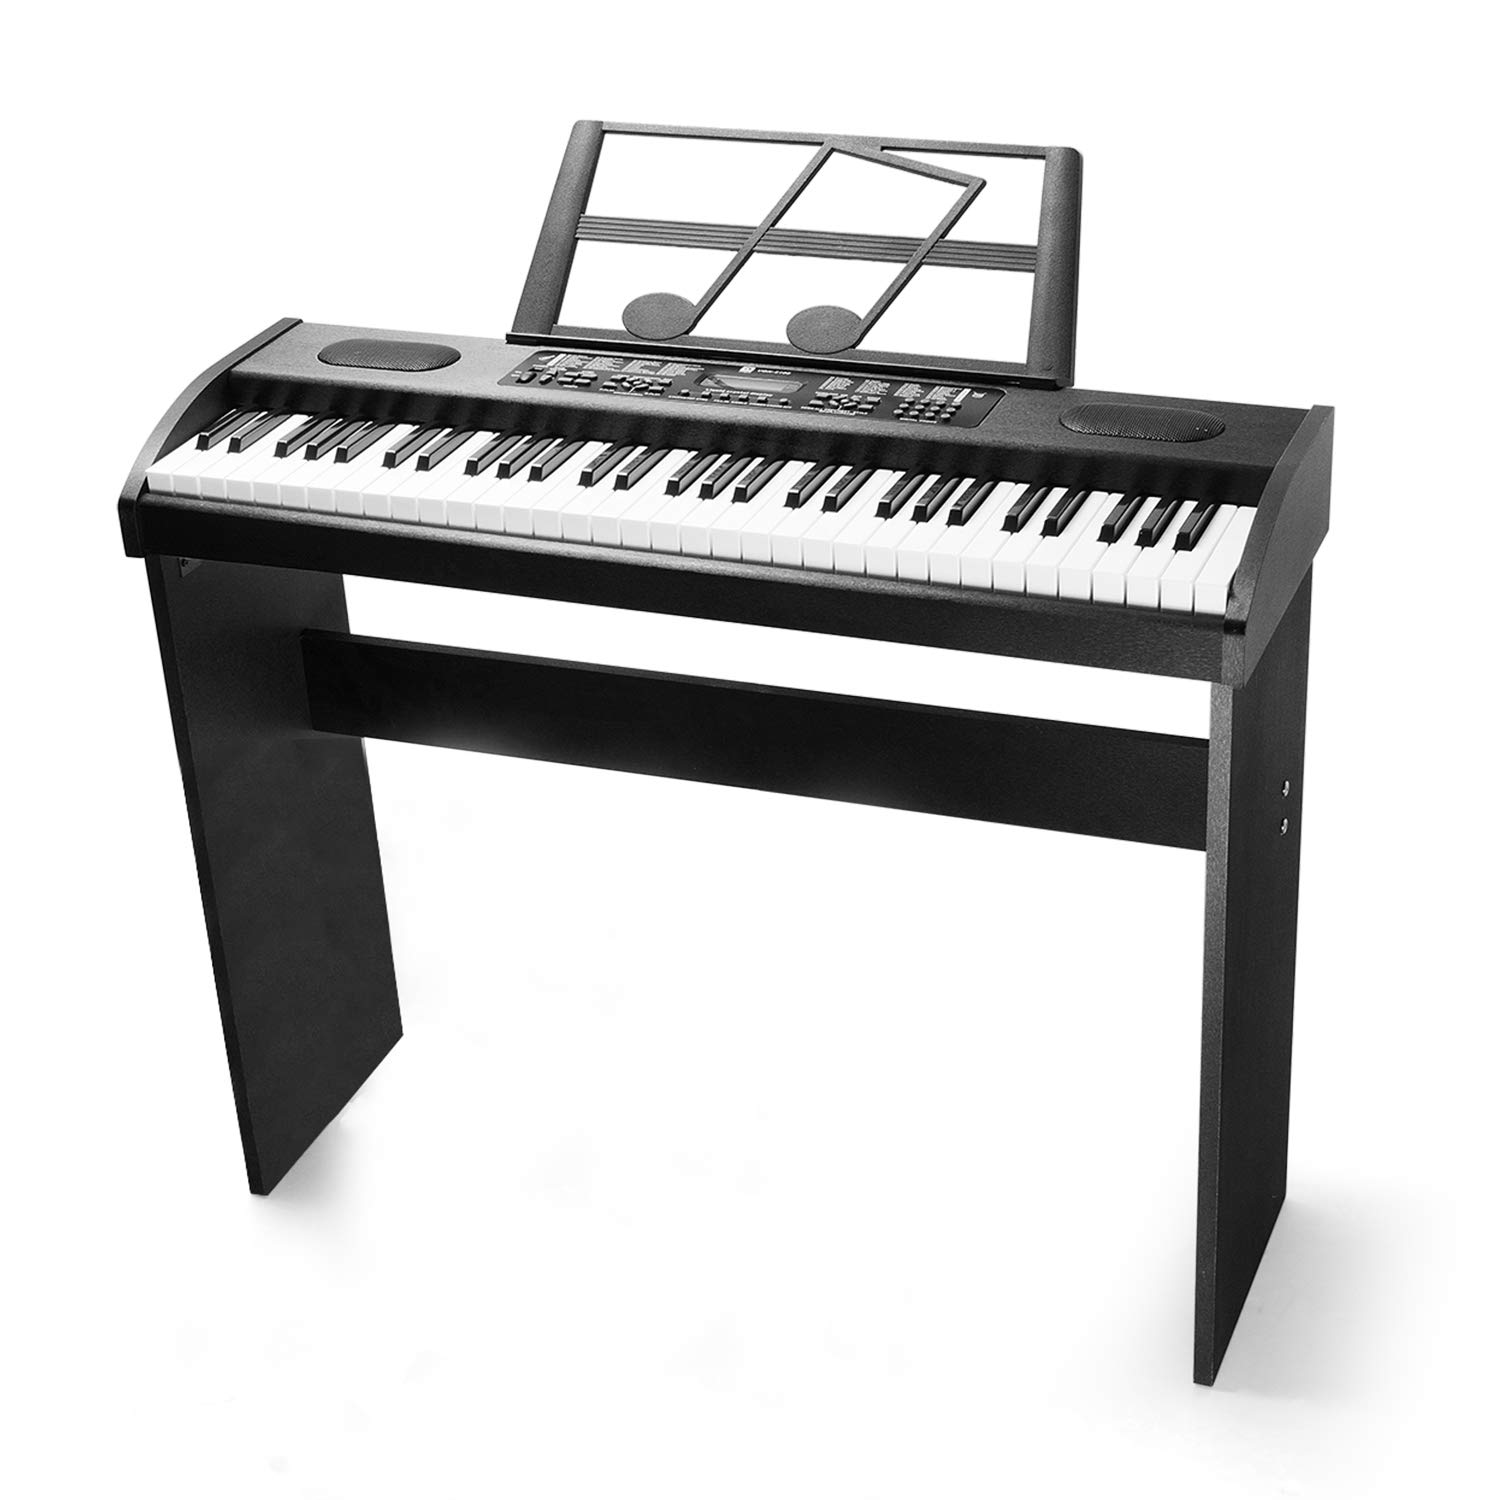 Vangoa VGK6100 61-Key Electronic Piano Keyboard with Stand, LCD Display Music, Black